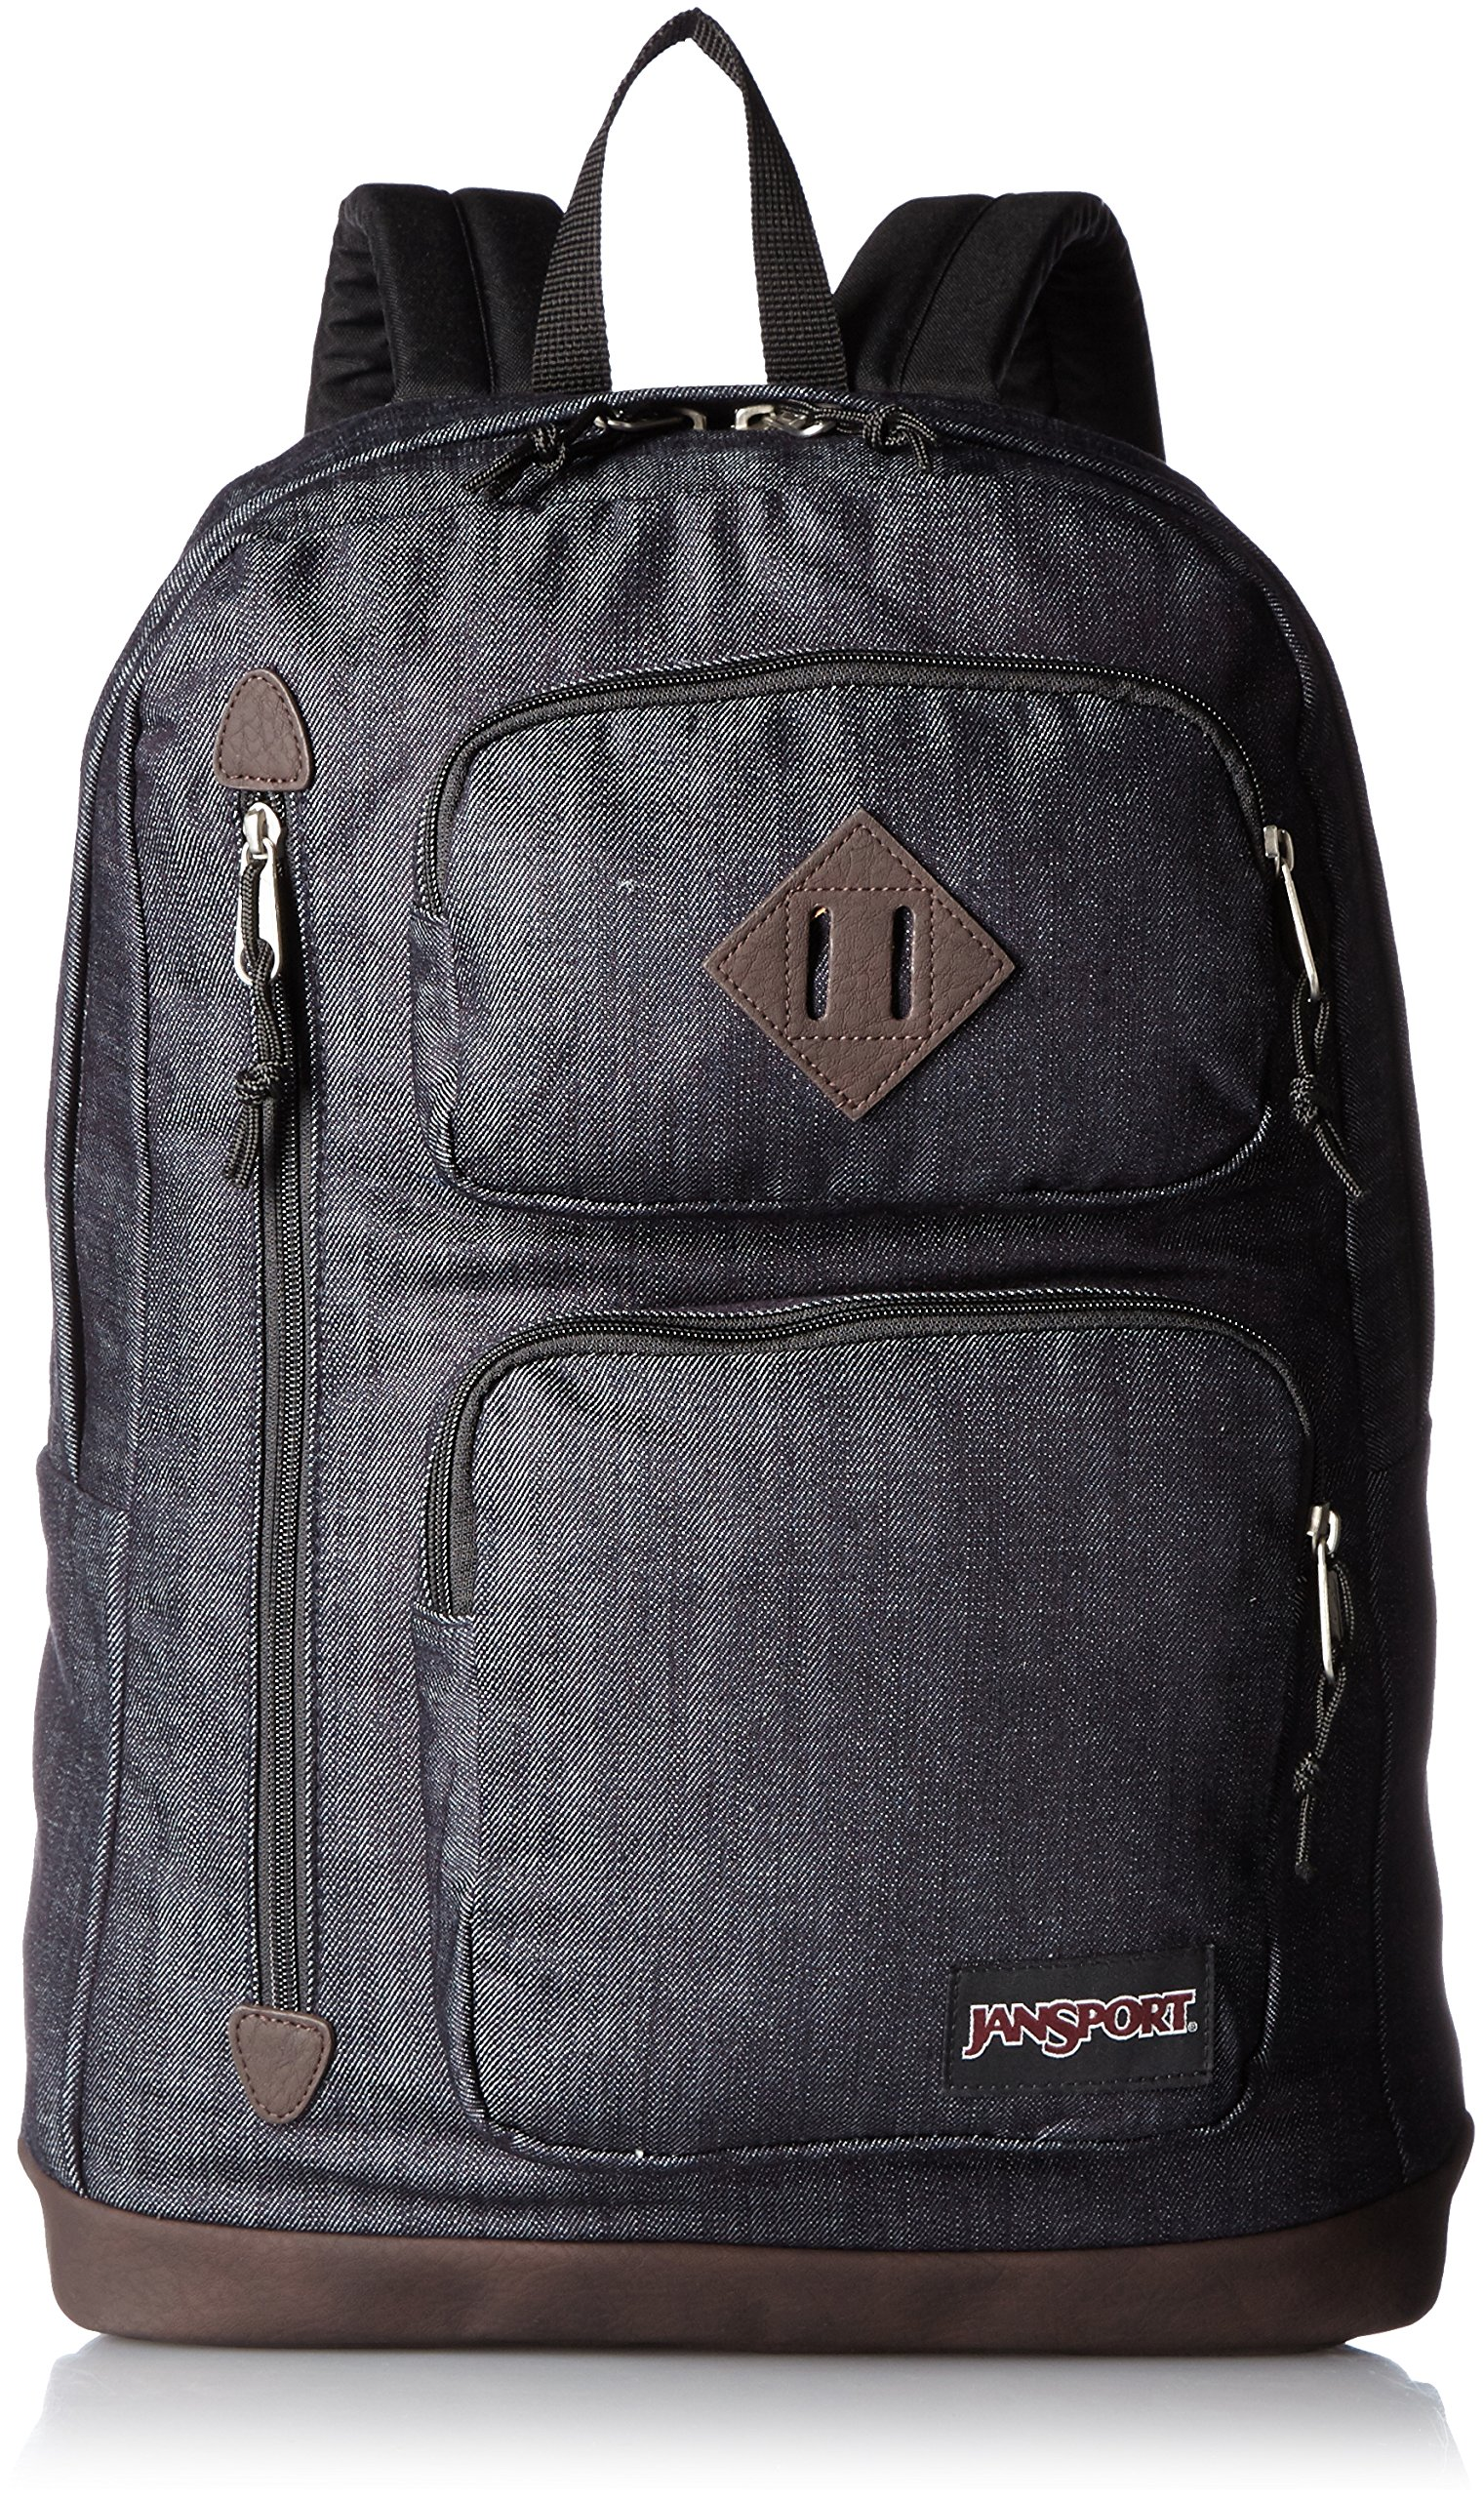 JanSport Houston Laptop Backpack- Discontinued Colors (Blue Denim - Expressions)